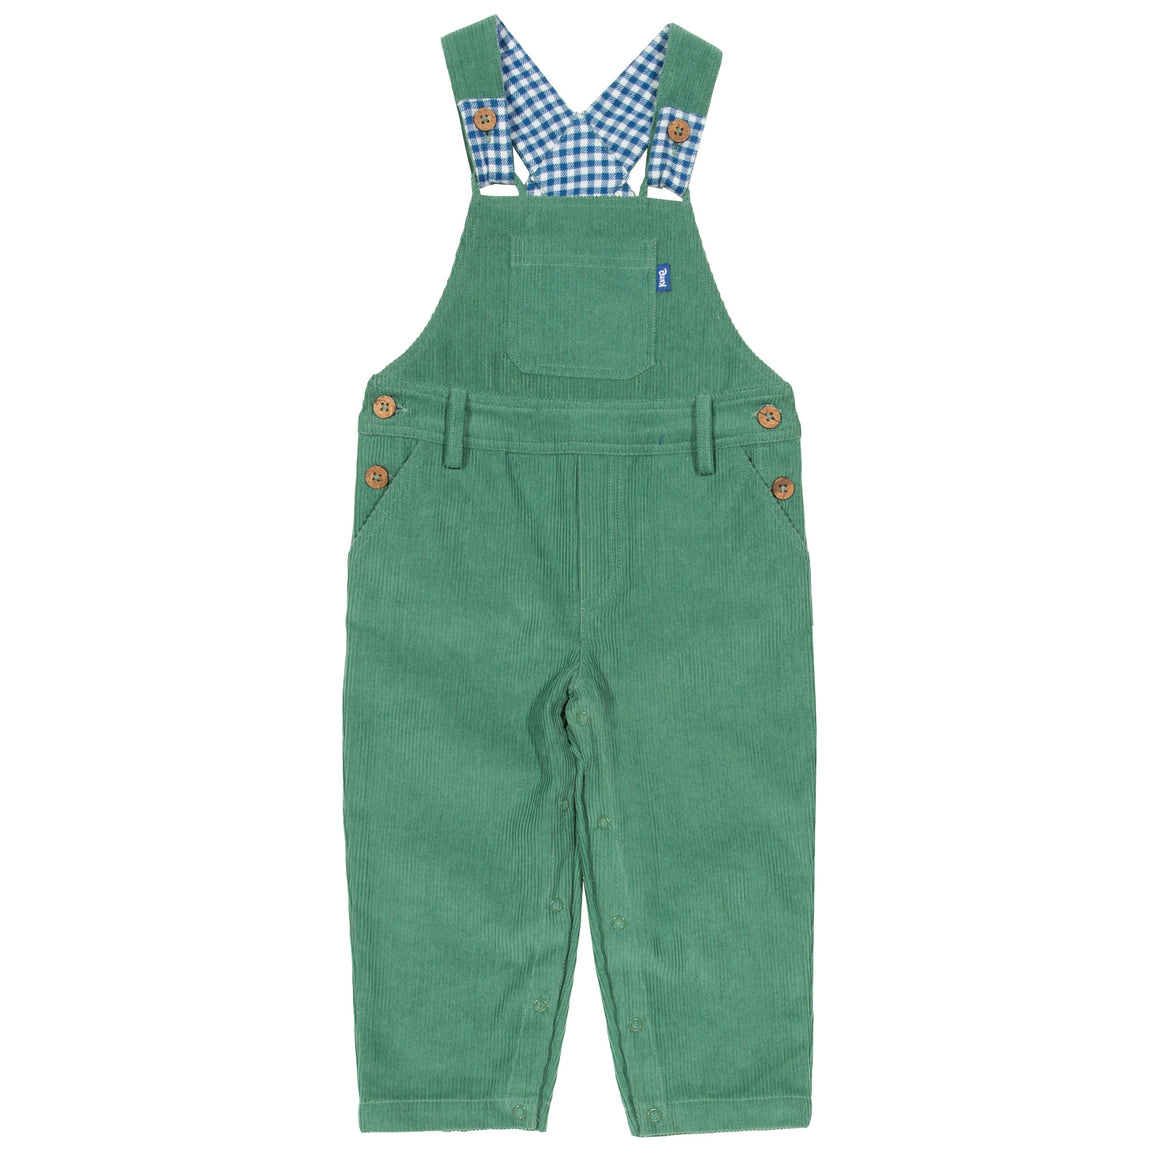 New Kite green cord dungarees size 18-24 months